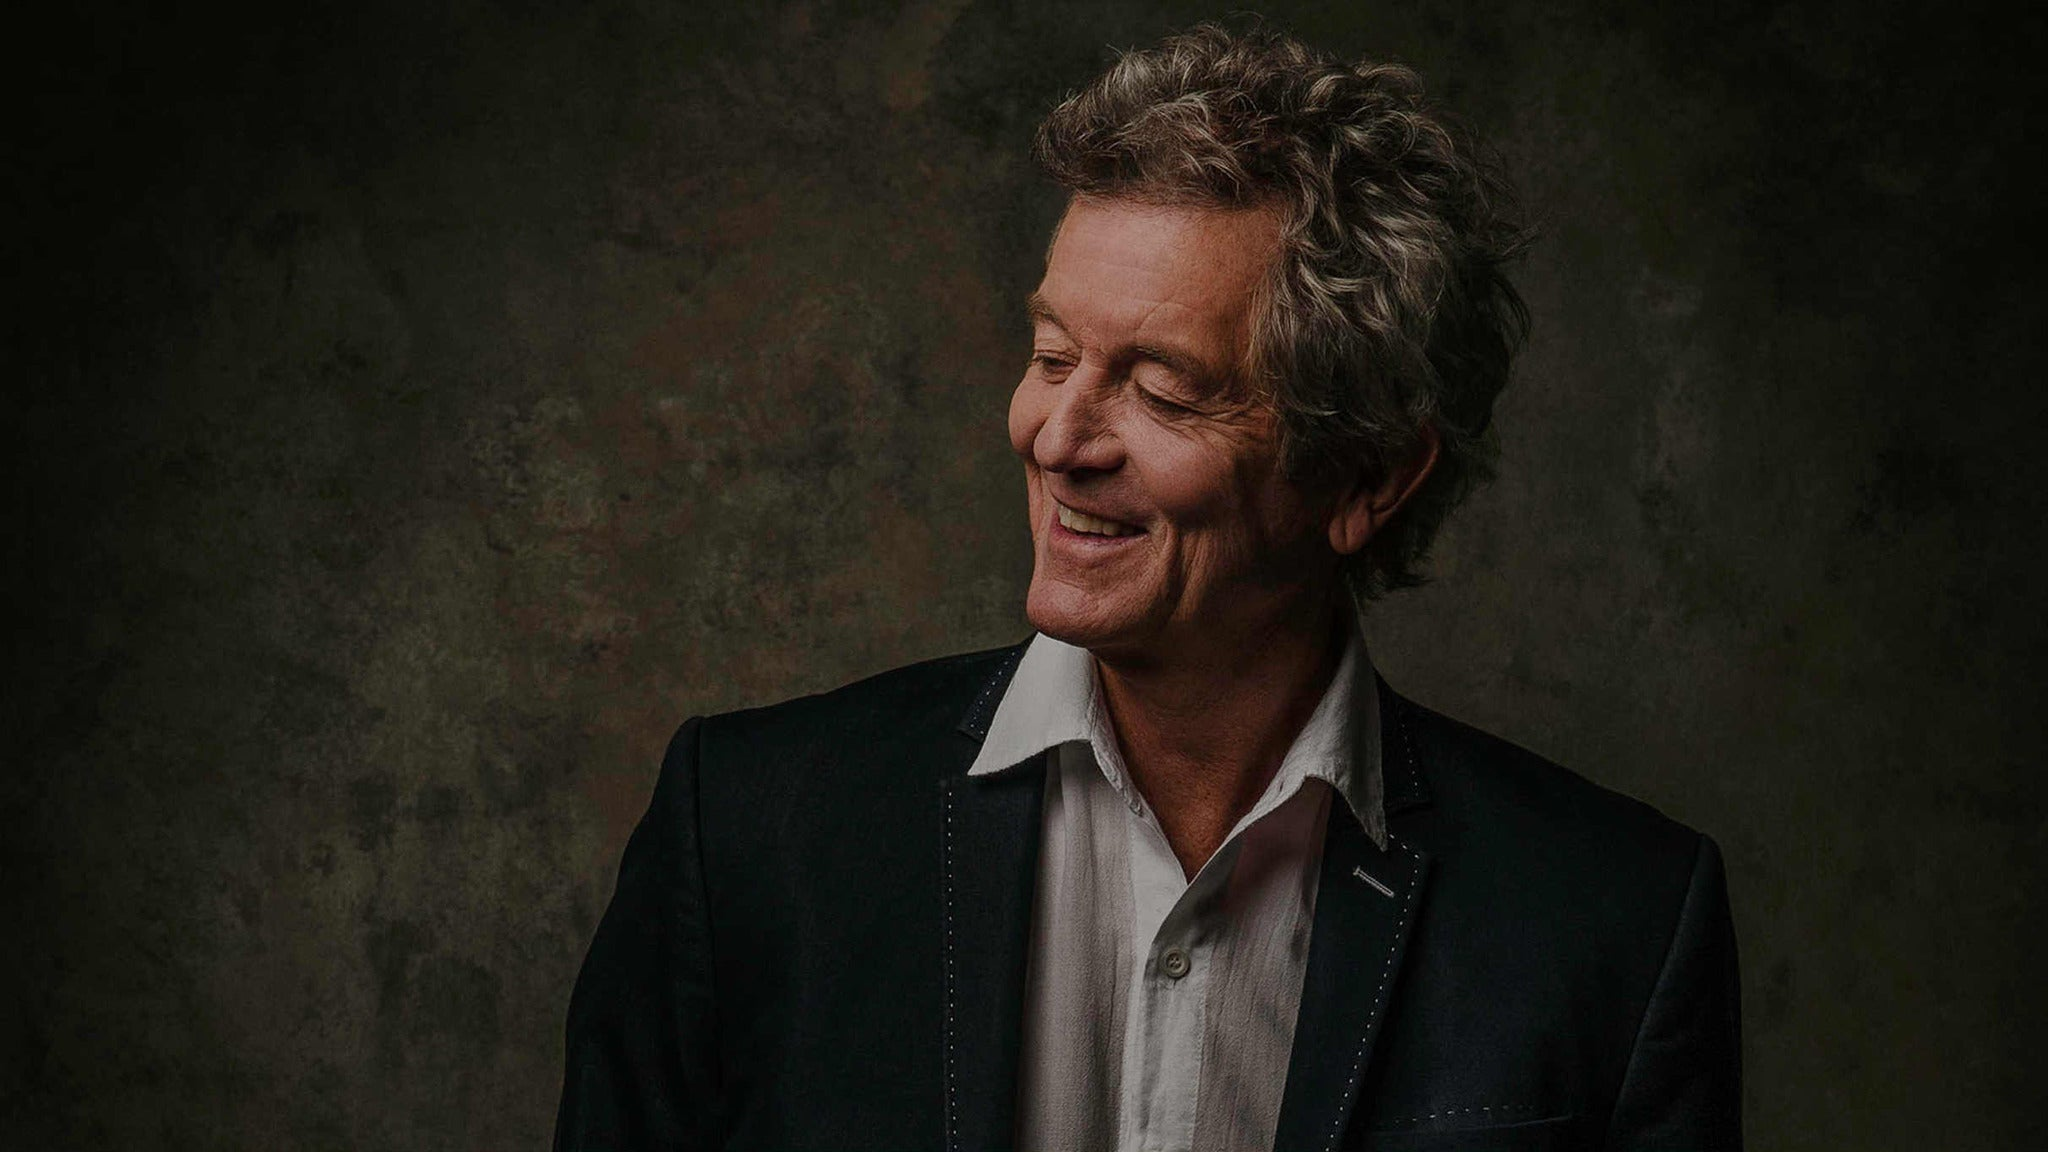 WXPN Welcomes Rodney Crowell at The Queen